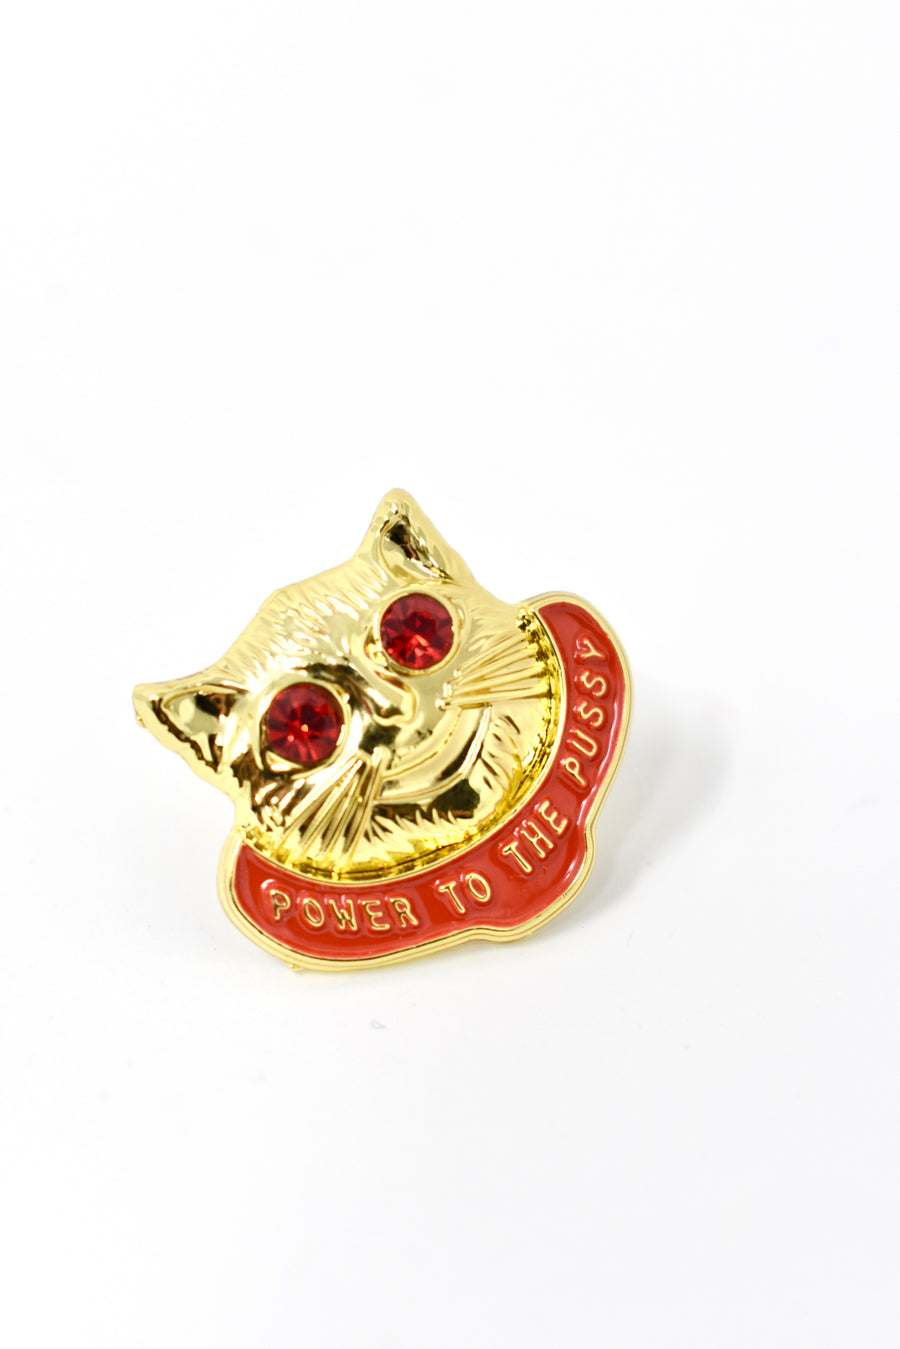 Power to the Pussy lapel pin